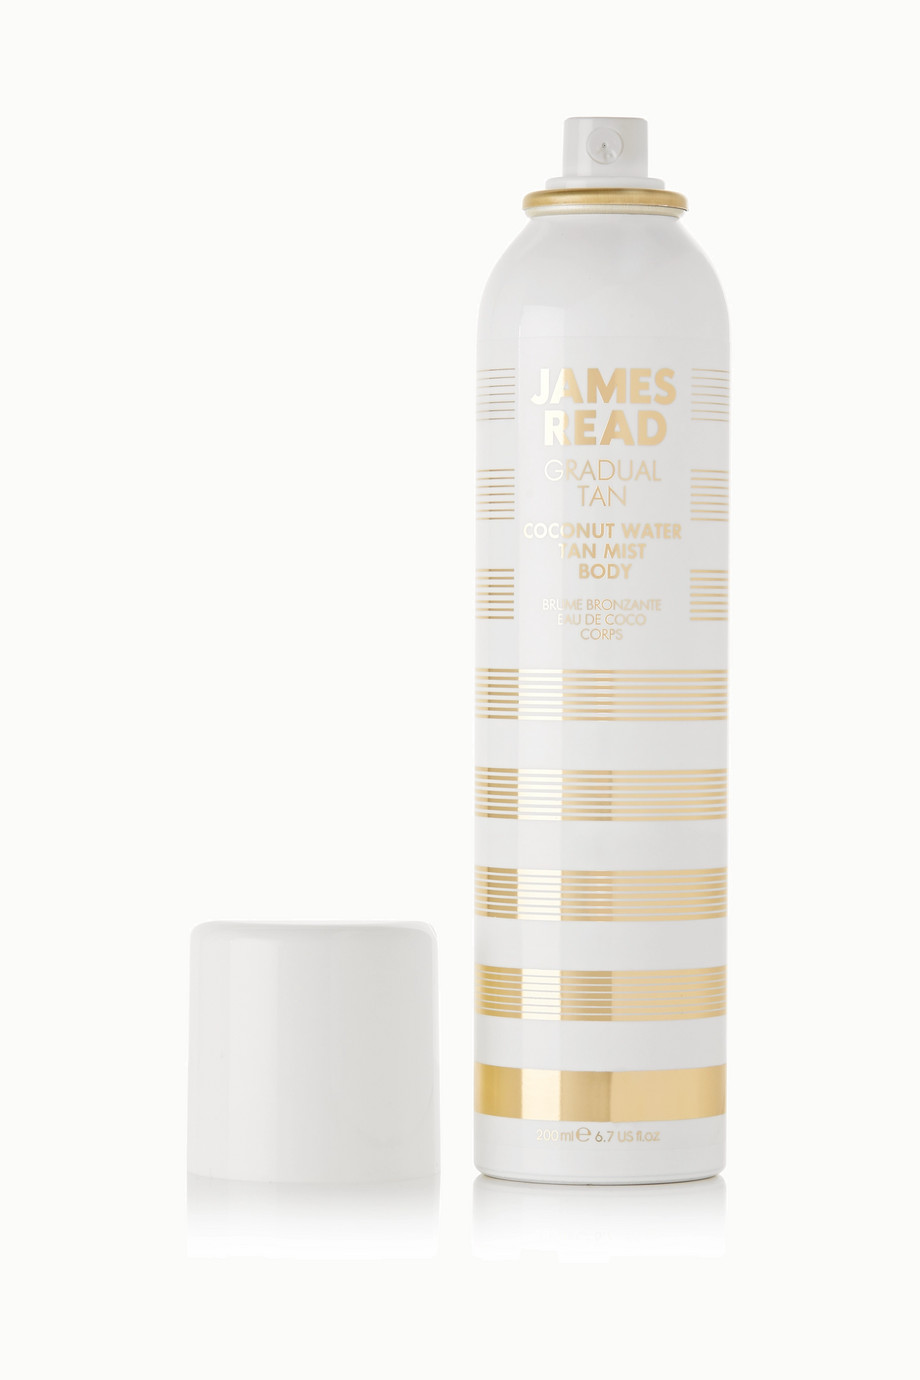 James Read Coconut Water Tan Mist Body, 200ml